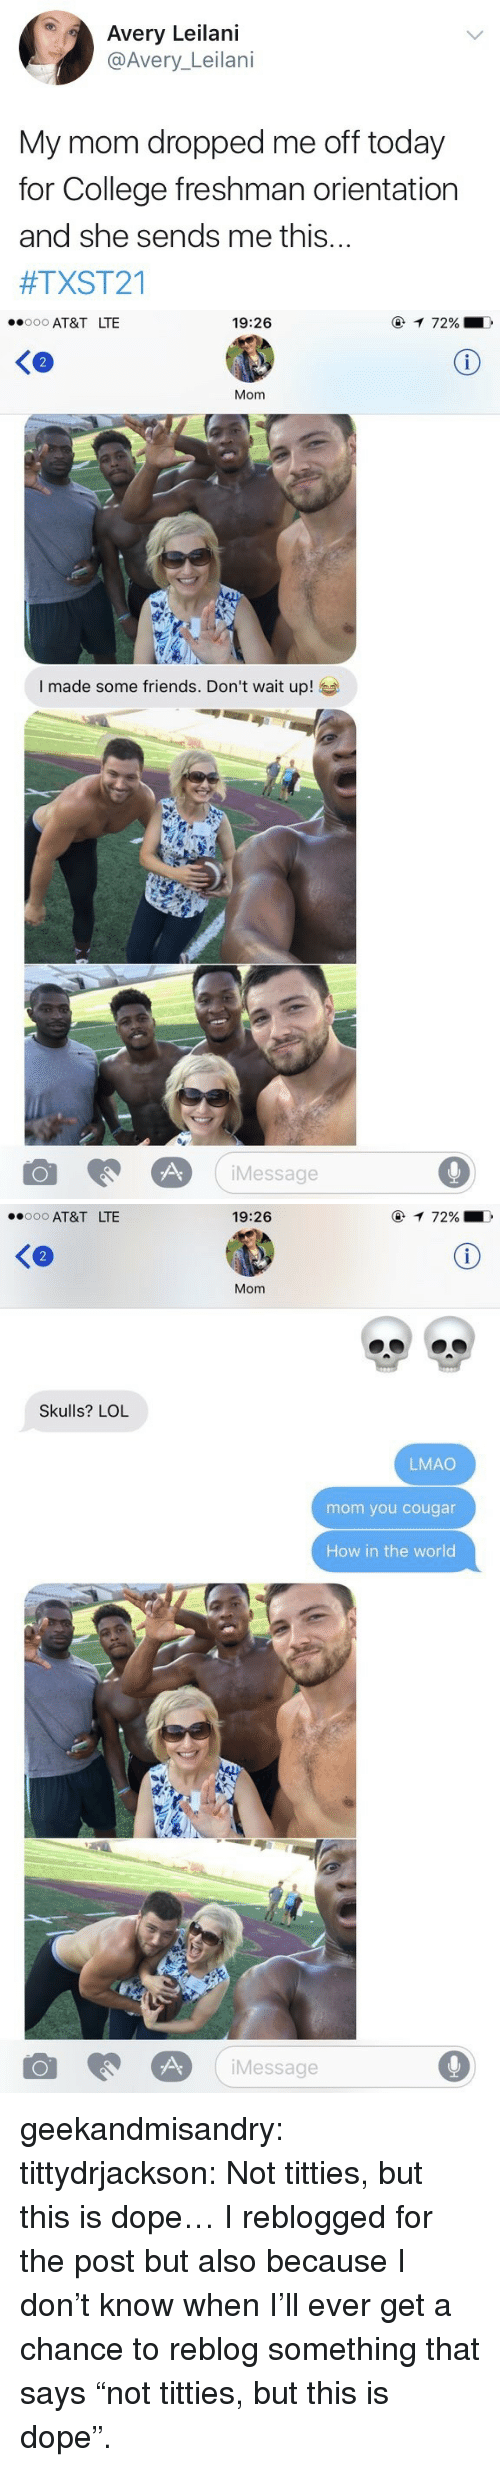 "Cougared: Avery Leilani  @Avery_Leilani  My mom dropped me off today  for College freshman orientation  and she sends me this...  #TXST21   AT&T LTE  19:26  2  Mom  I made some friends. Don't wait up!  iMessage  9   AT&T LTE  19:26  Ke  Mom  Skulls? LOL  LMAO  mom you cougar  How in the world  Message  9 geekandmisandry:  tittydrjackson:  Not titties, but this is dope…  I reblogged for the post but also because I don't know when I'll ever get a chance to reblog something that says ""not titties, but this is dope""."